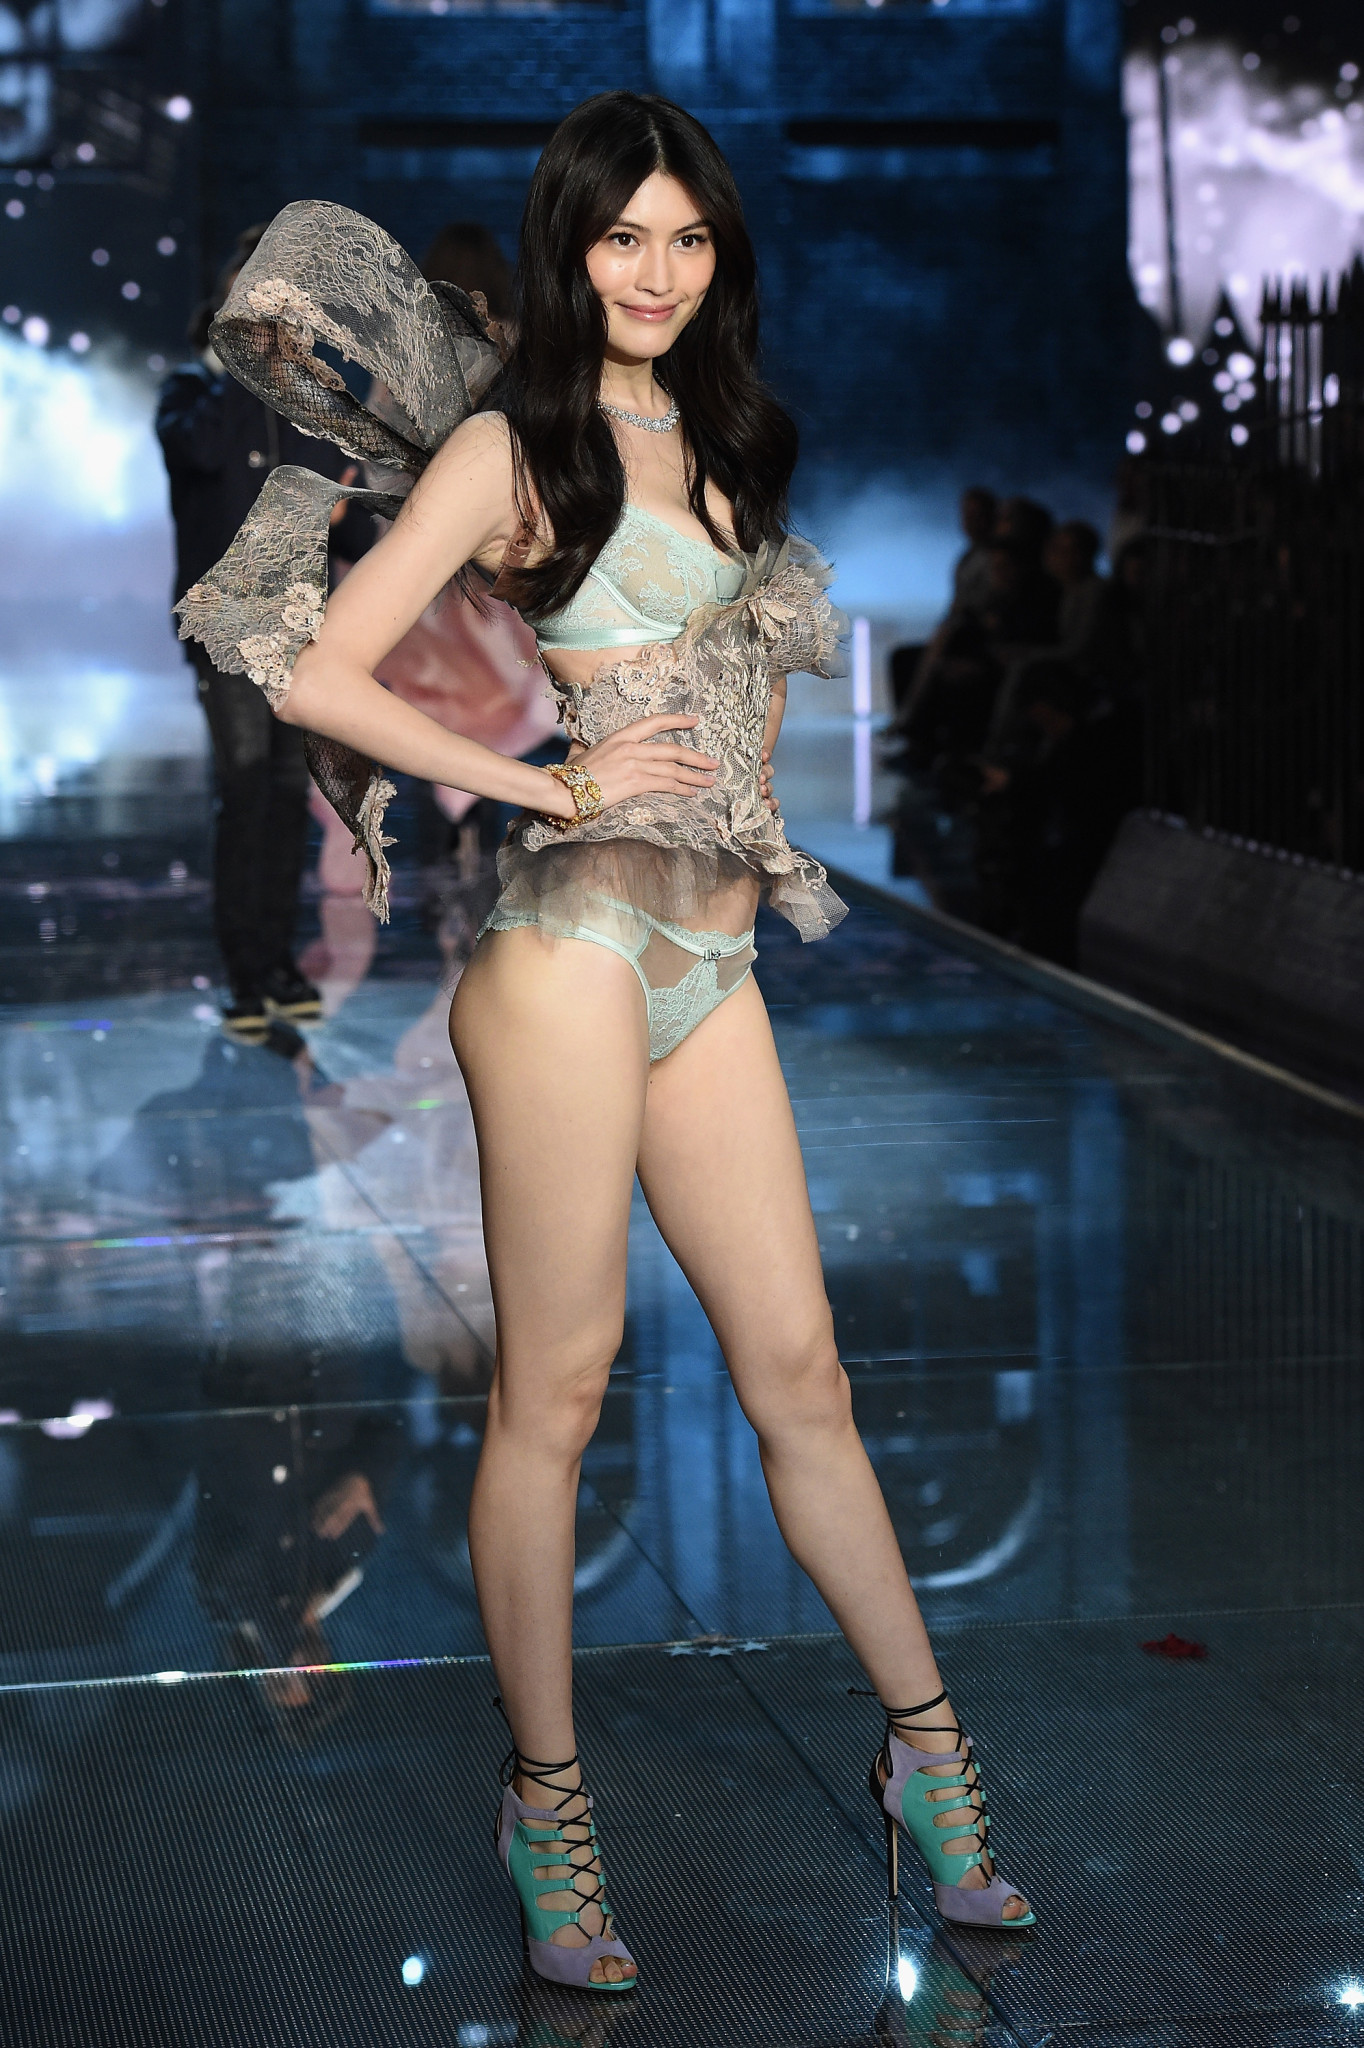 NEW YORK, NY - NOVEMBER 10: Model Sui Her from China walks the runway during the 2015 Victoria's Secret Fashion Show at Lexington Avenue Armory on November 10, 2015 in New York City.